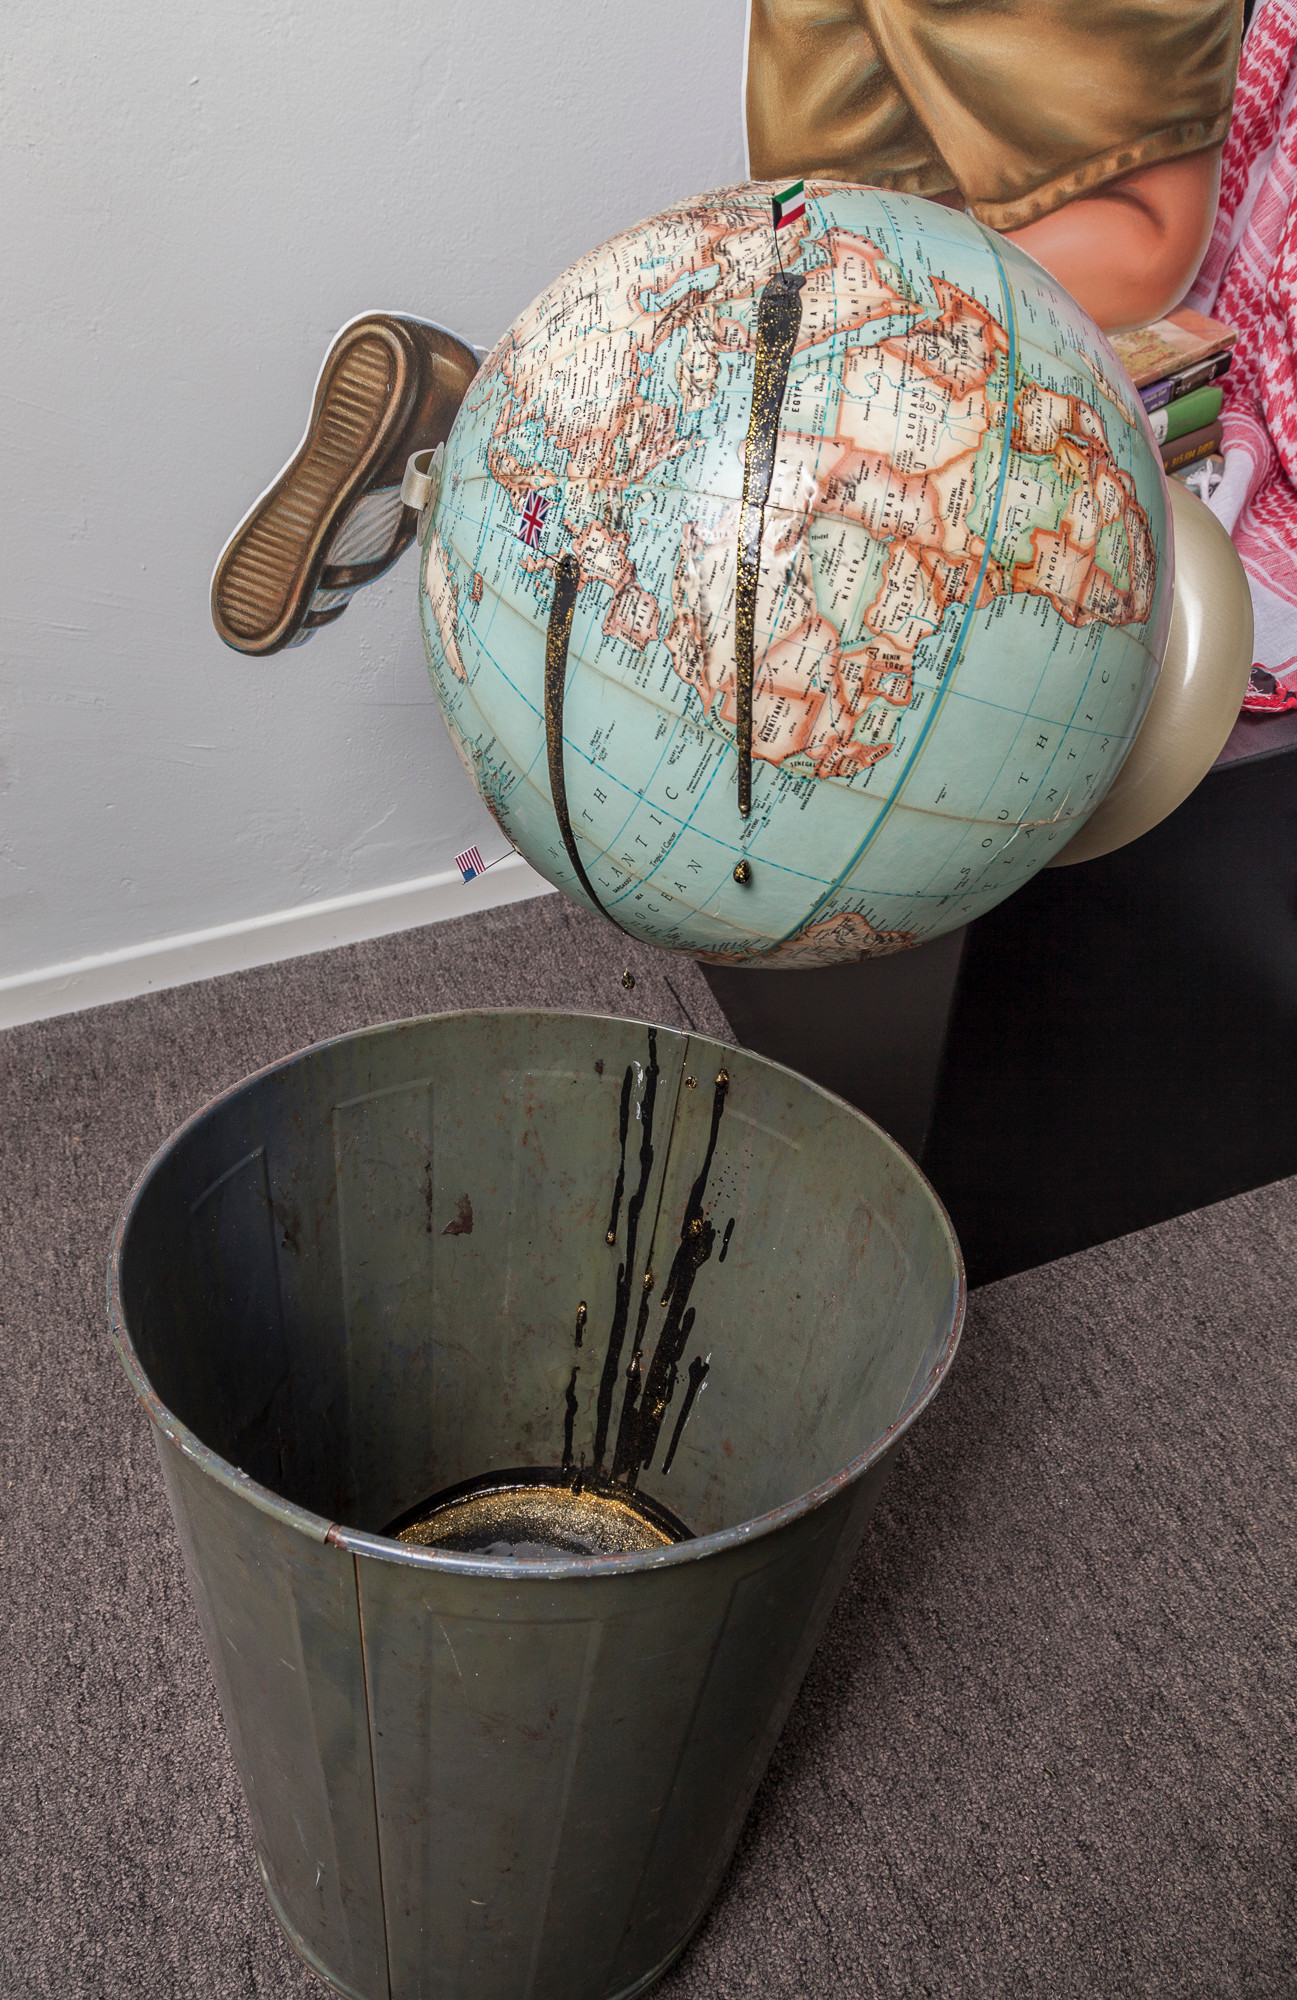 "Vintage classroom globe with miniature flags marking U.S., U.K., and Kuwait. ""Oil"" dripping from flags marking these nations into metal trash can (black acrylic paint, gold glitter, beads on monofilament). Drips continued on side of can; bottom partially filled with black resin and glitter. Vintage classroom globe with miniature flags marking U.S., U.K., and Kuwait. ""Oil"" dripping from flags marking these nations into metal trash can (black acrylic paint, gold glitter, beads on monofilament). Drips continued on side of can; bottom partially filled with black resin and glitter."